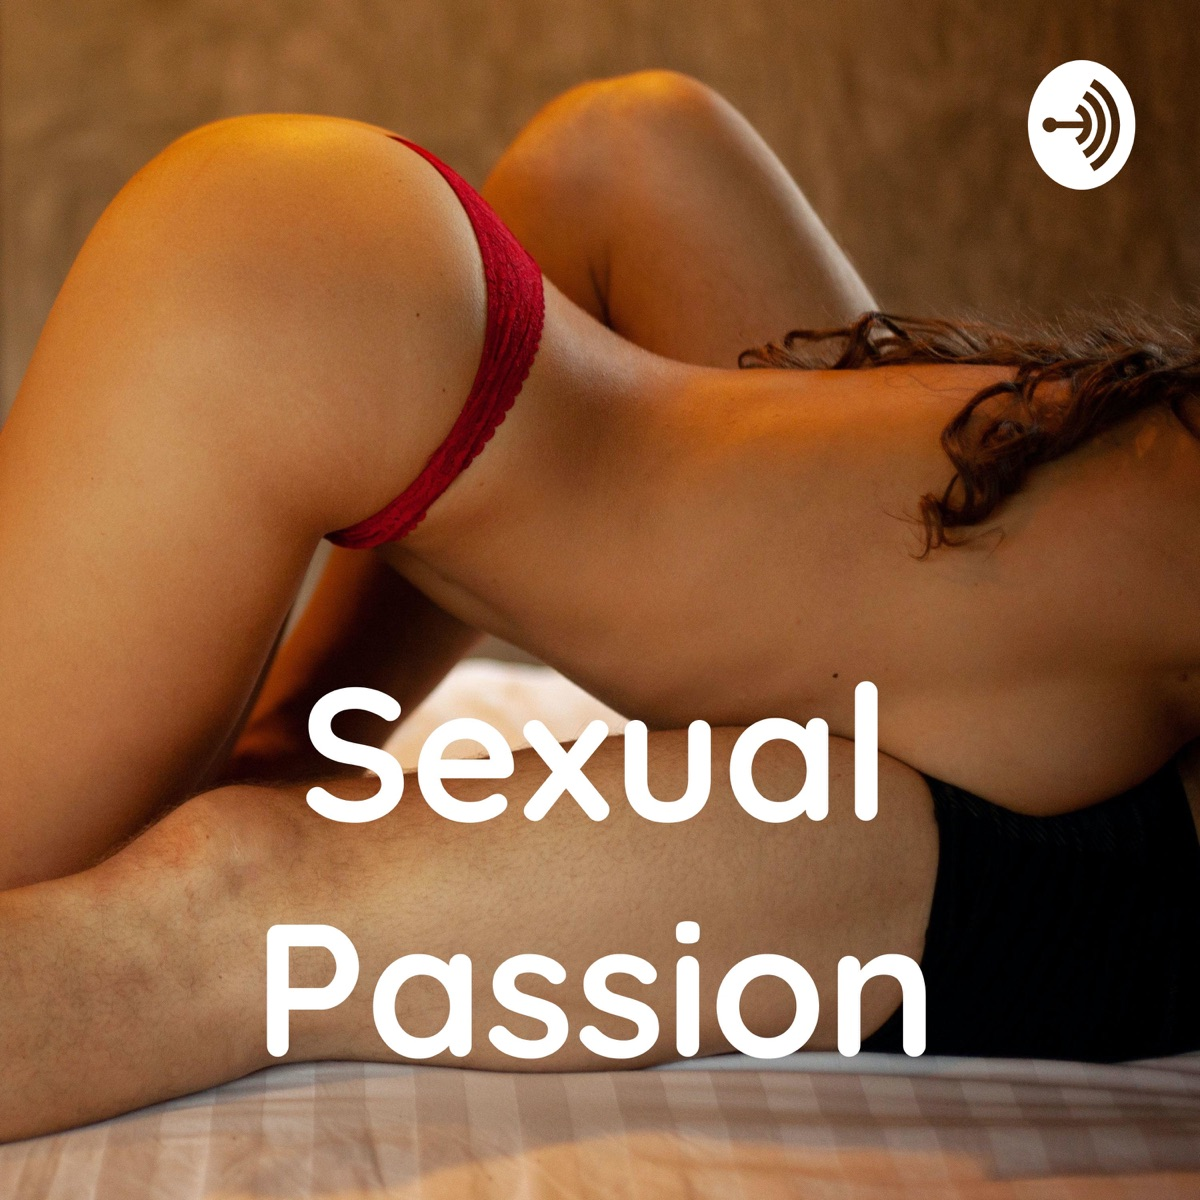 Sexual Passion